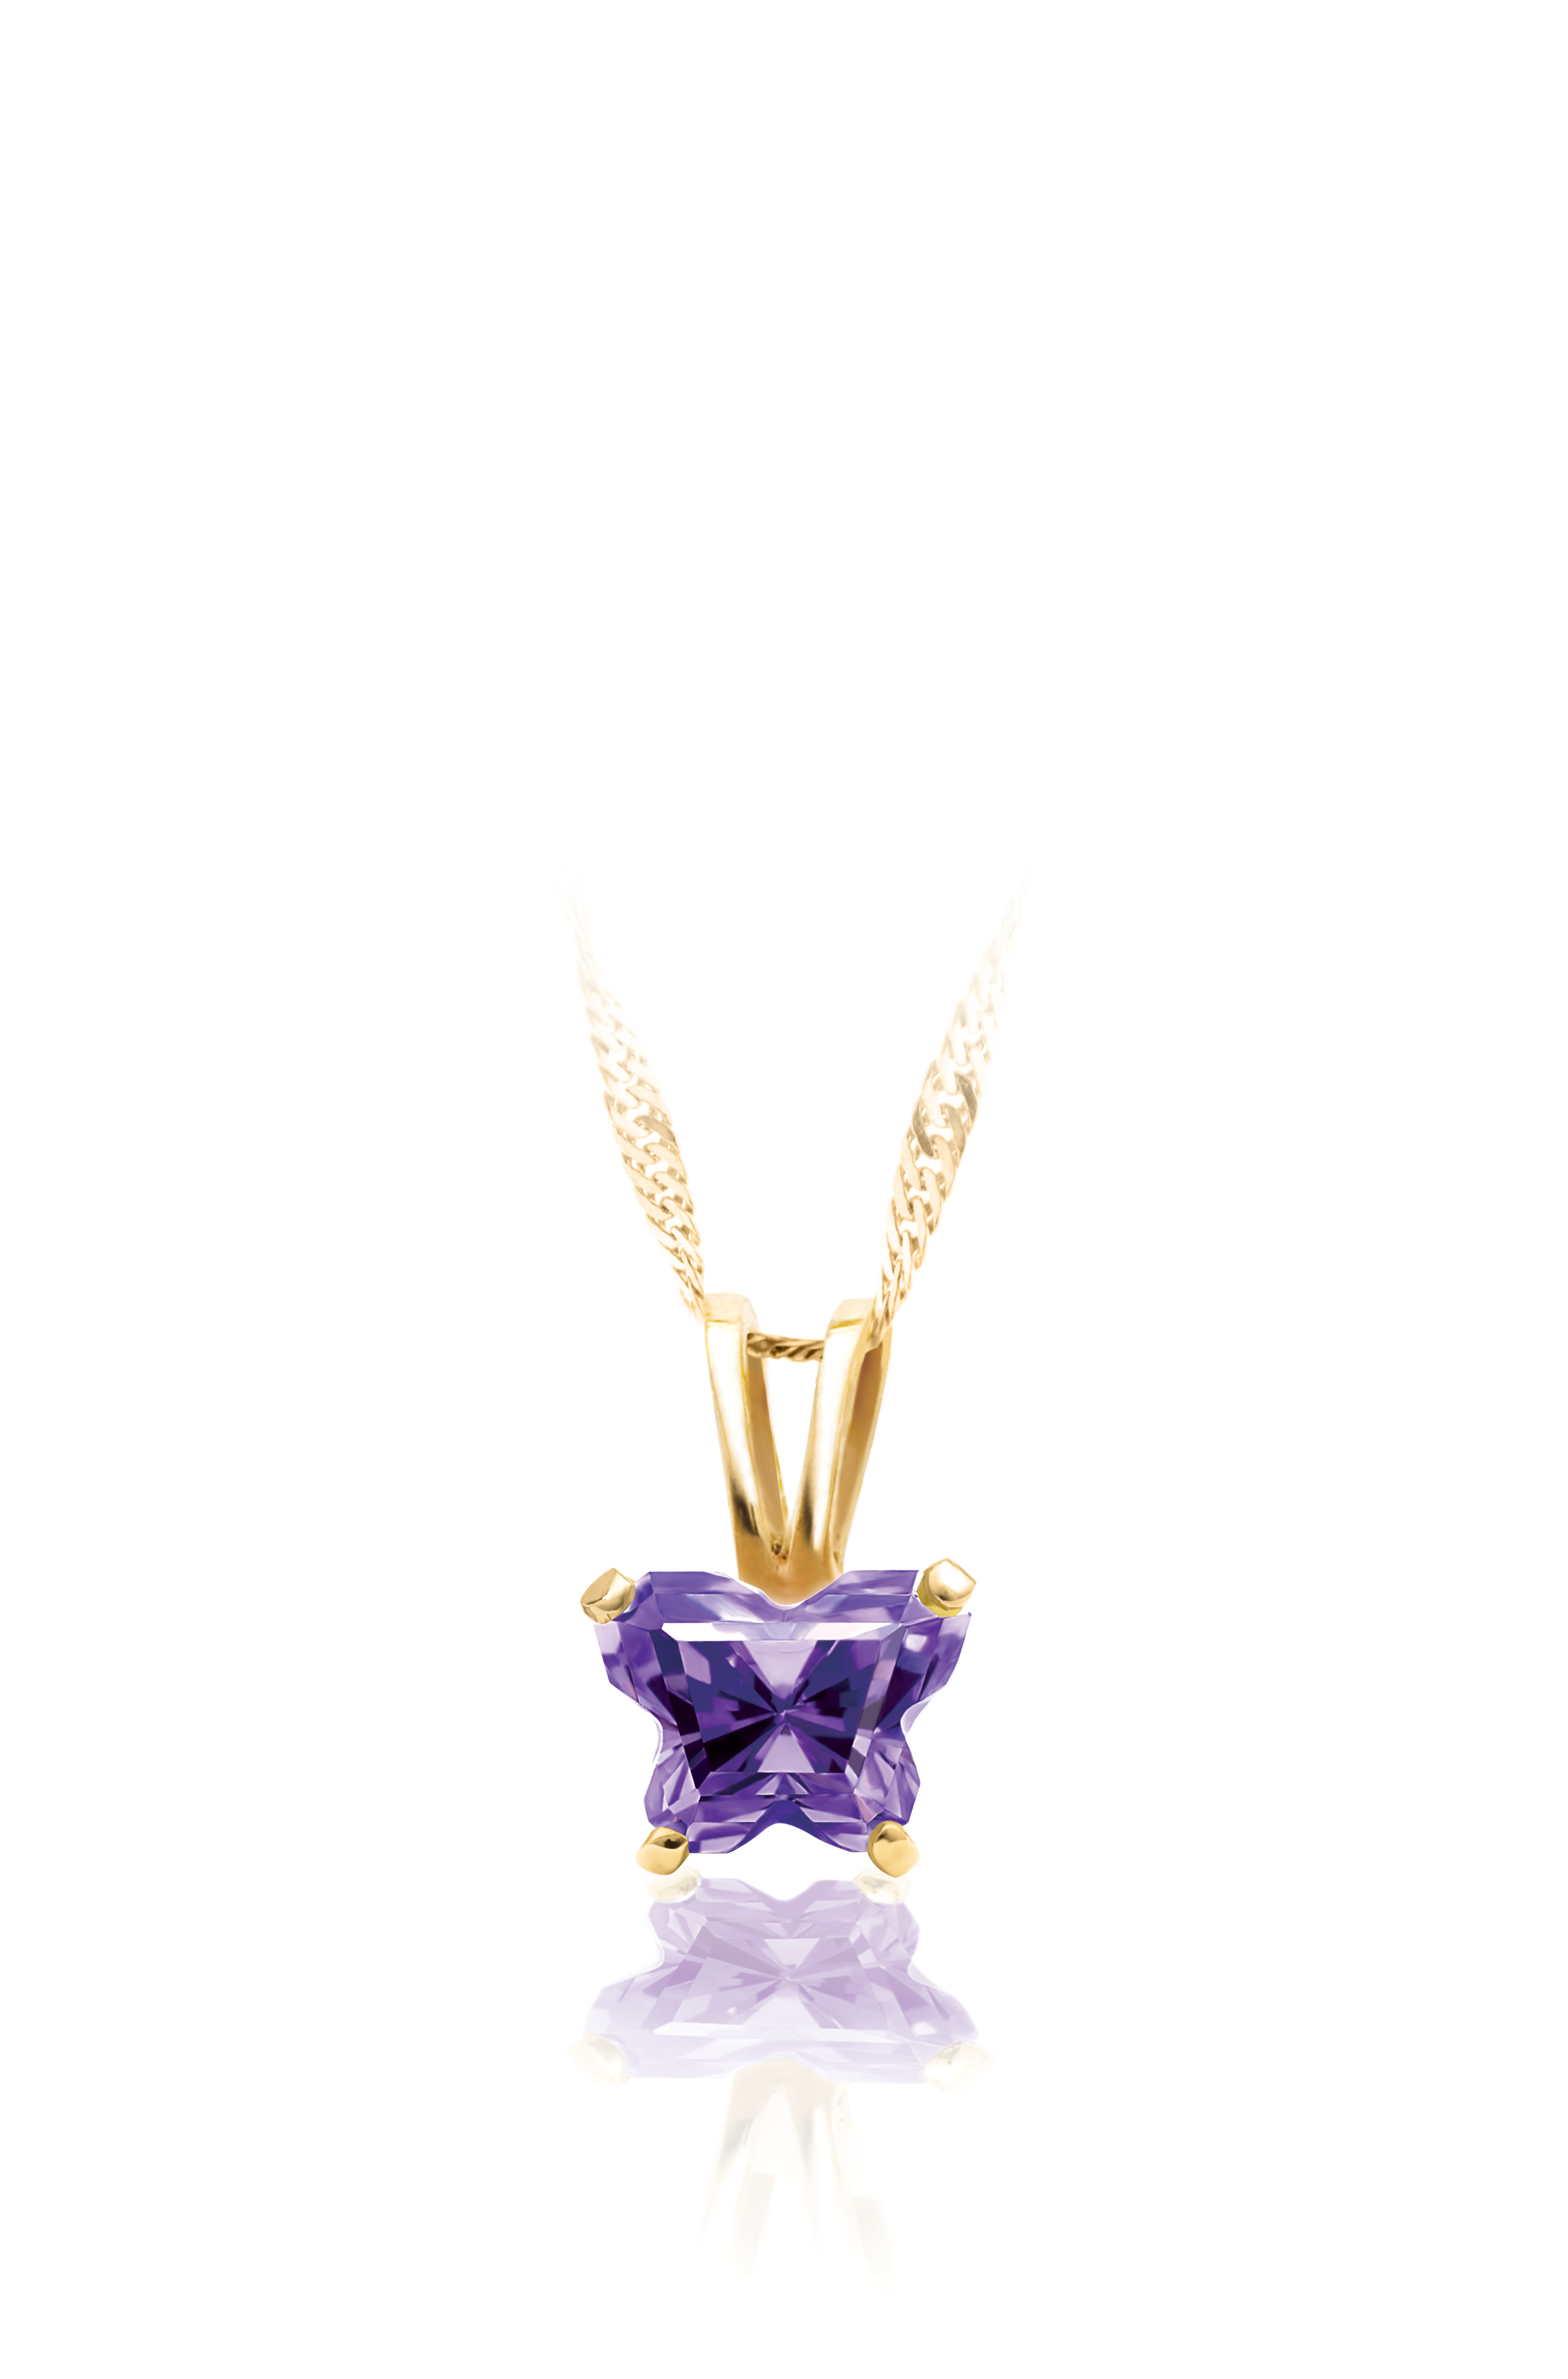 pendant for babies with purple cubic zirconia (month of February) - in 10K yellow Gold - chain not included